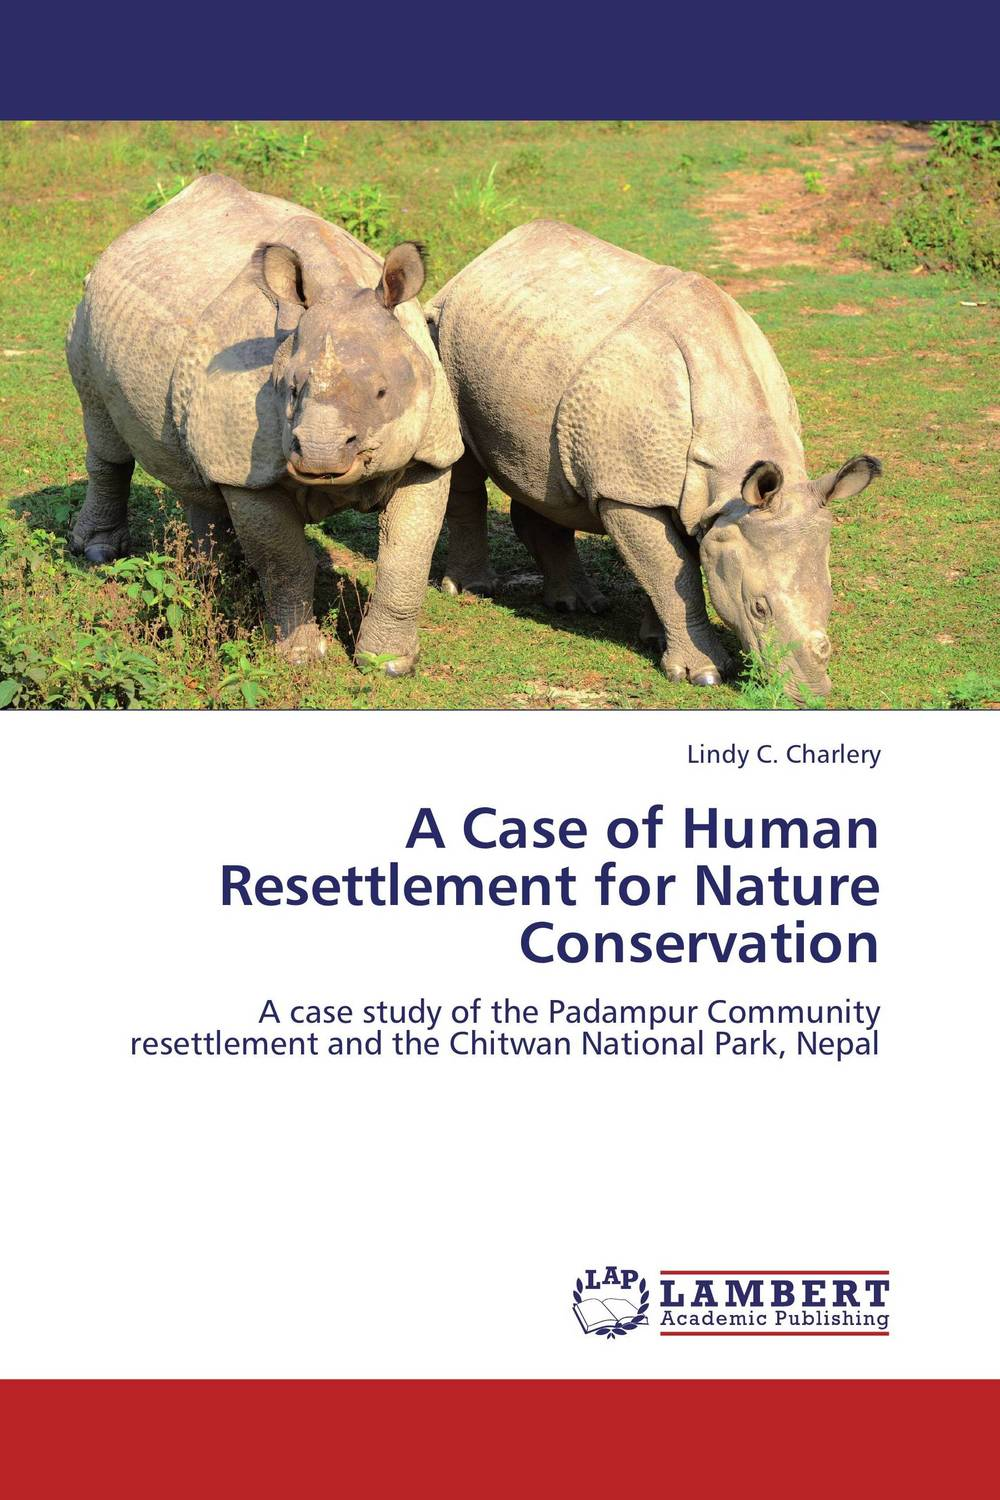 A Case of Human Resettlement for Nature Conservation